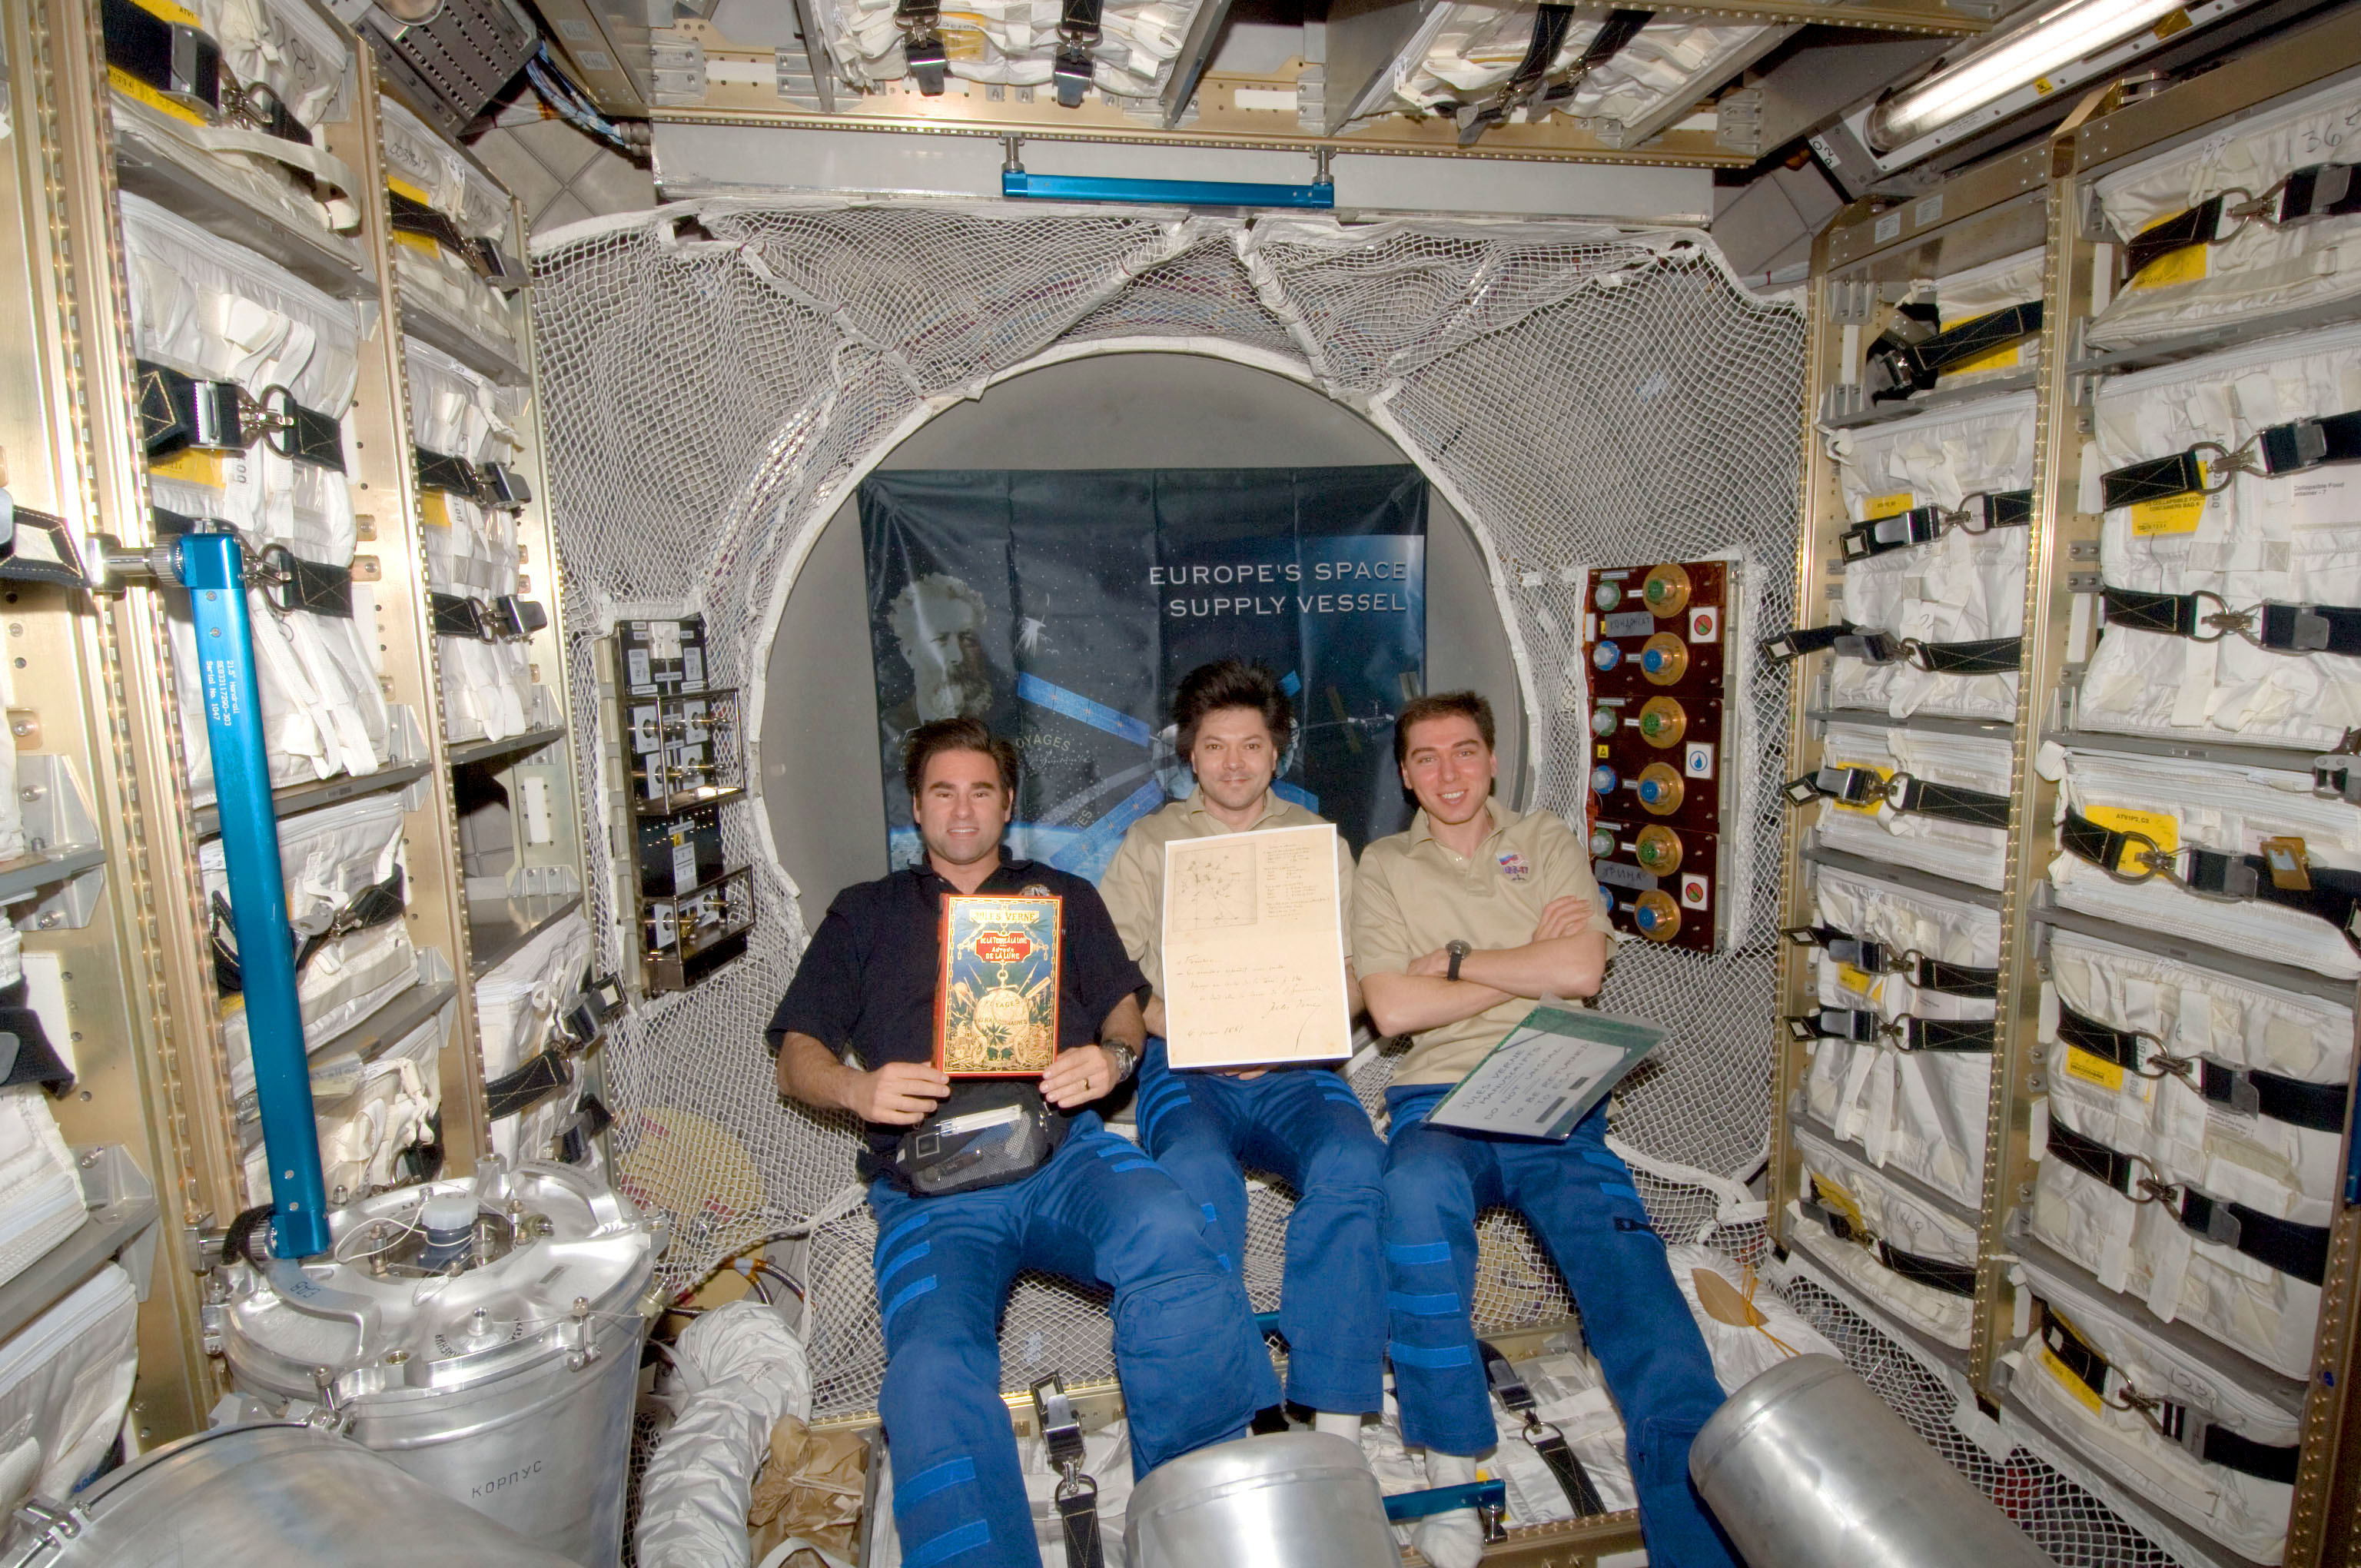 Crew_in_ATV_with_Jules_Verne_manuscript.